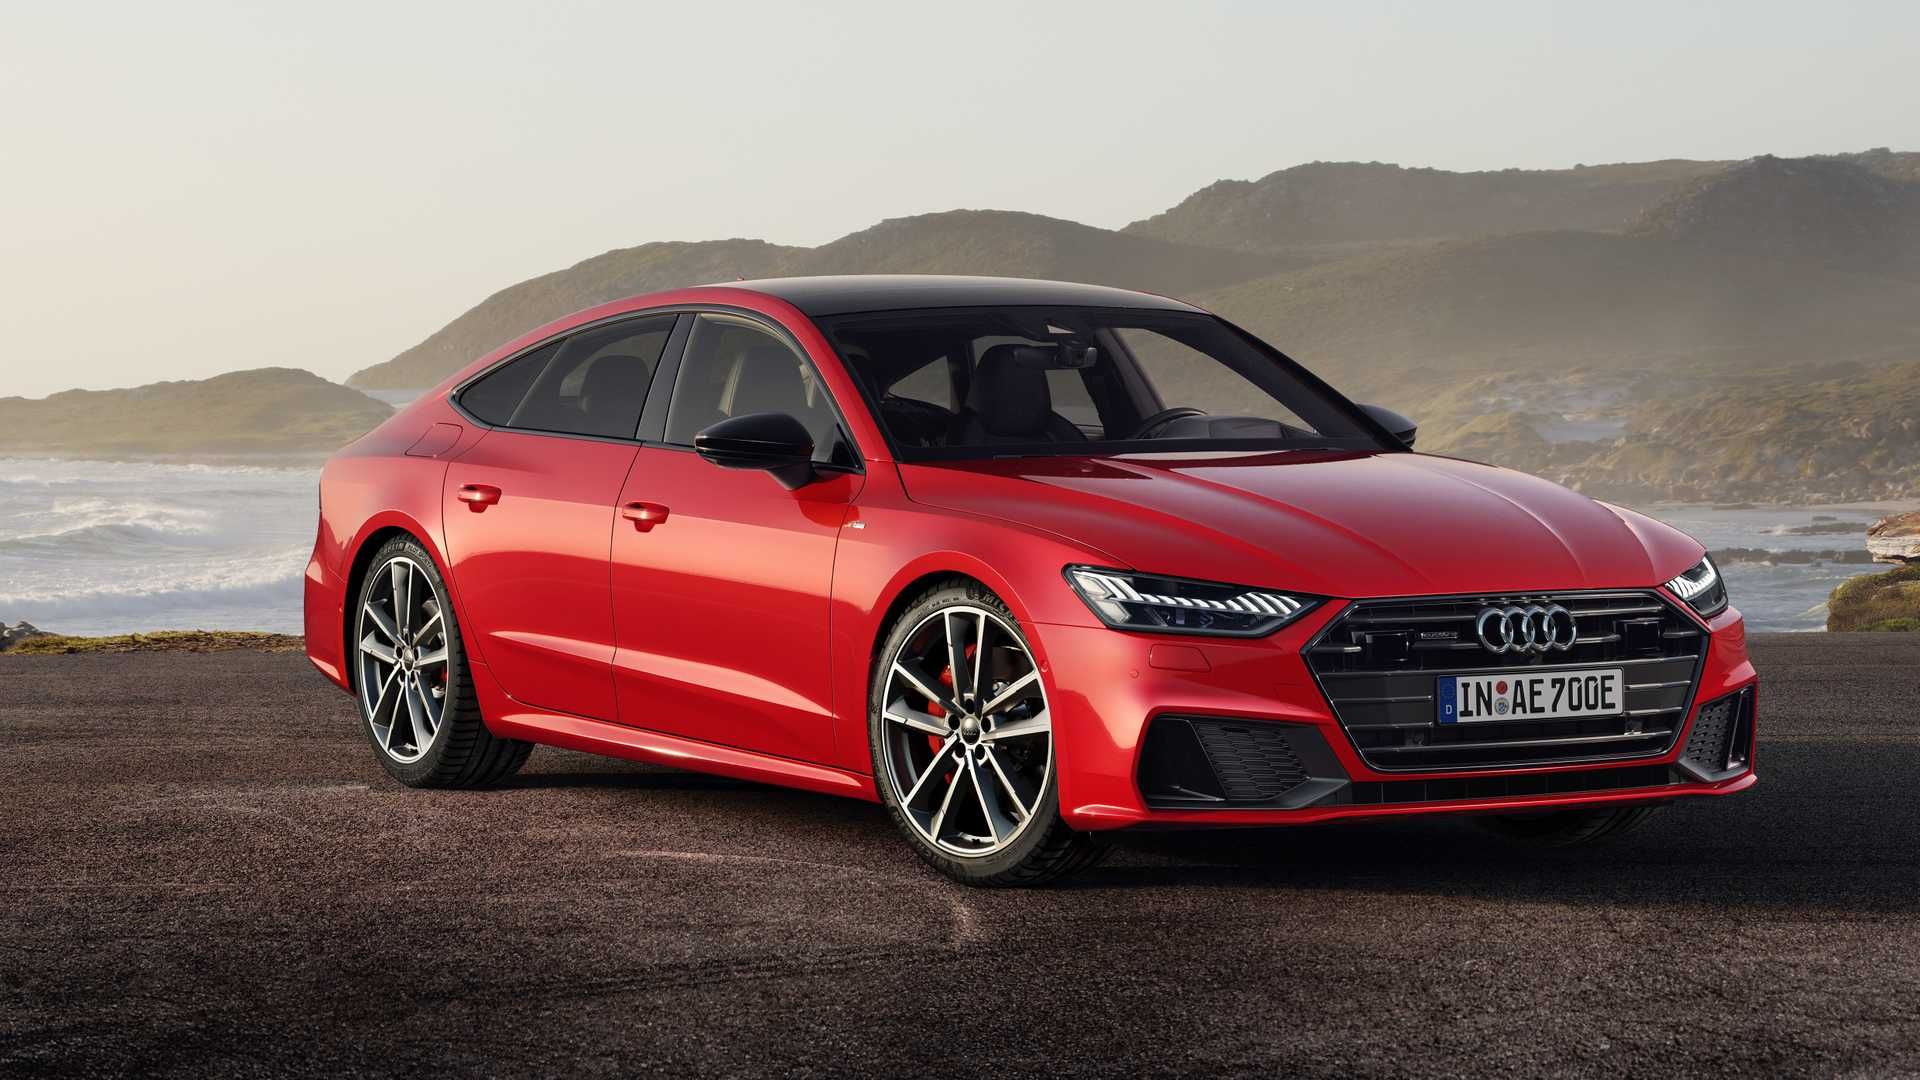 Audi A3 Sportback getting a long wheelbase version in China - report